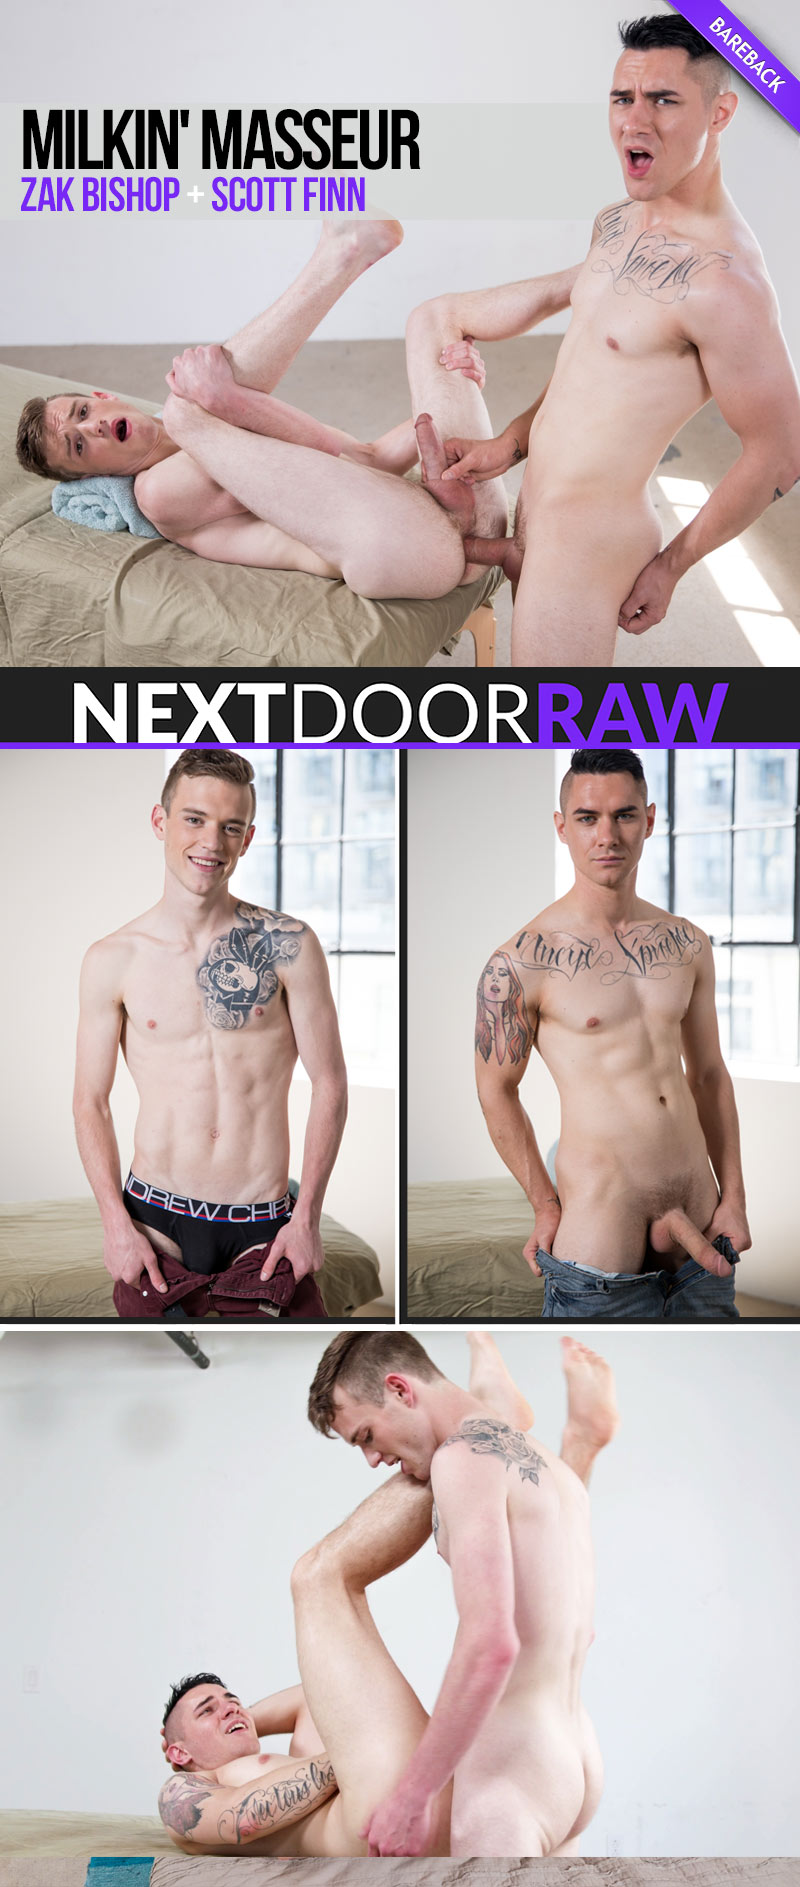 Milkin' Masseur (Zak Bishop and Scott Finn Flip-Fuck) (Bareback) at NextDoorRAW!